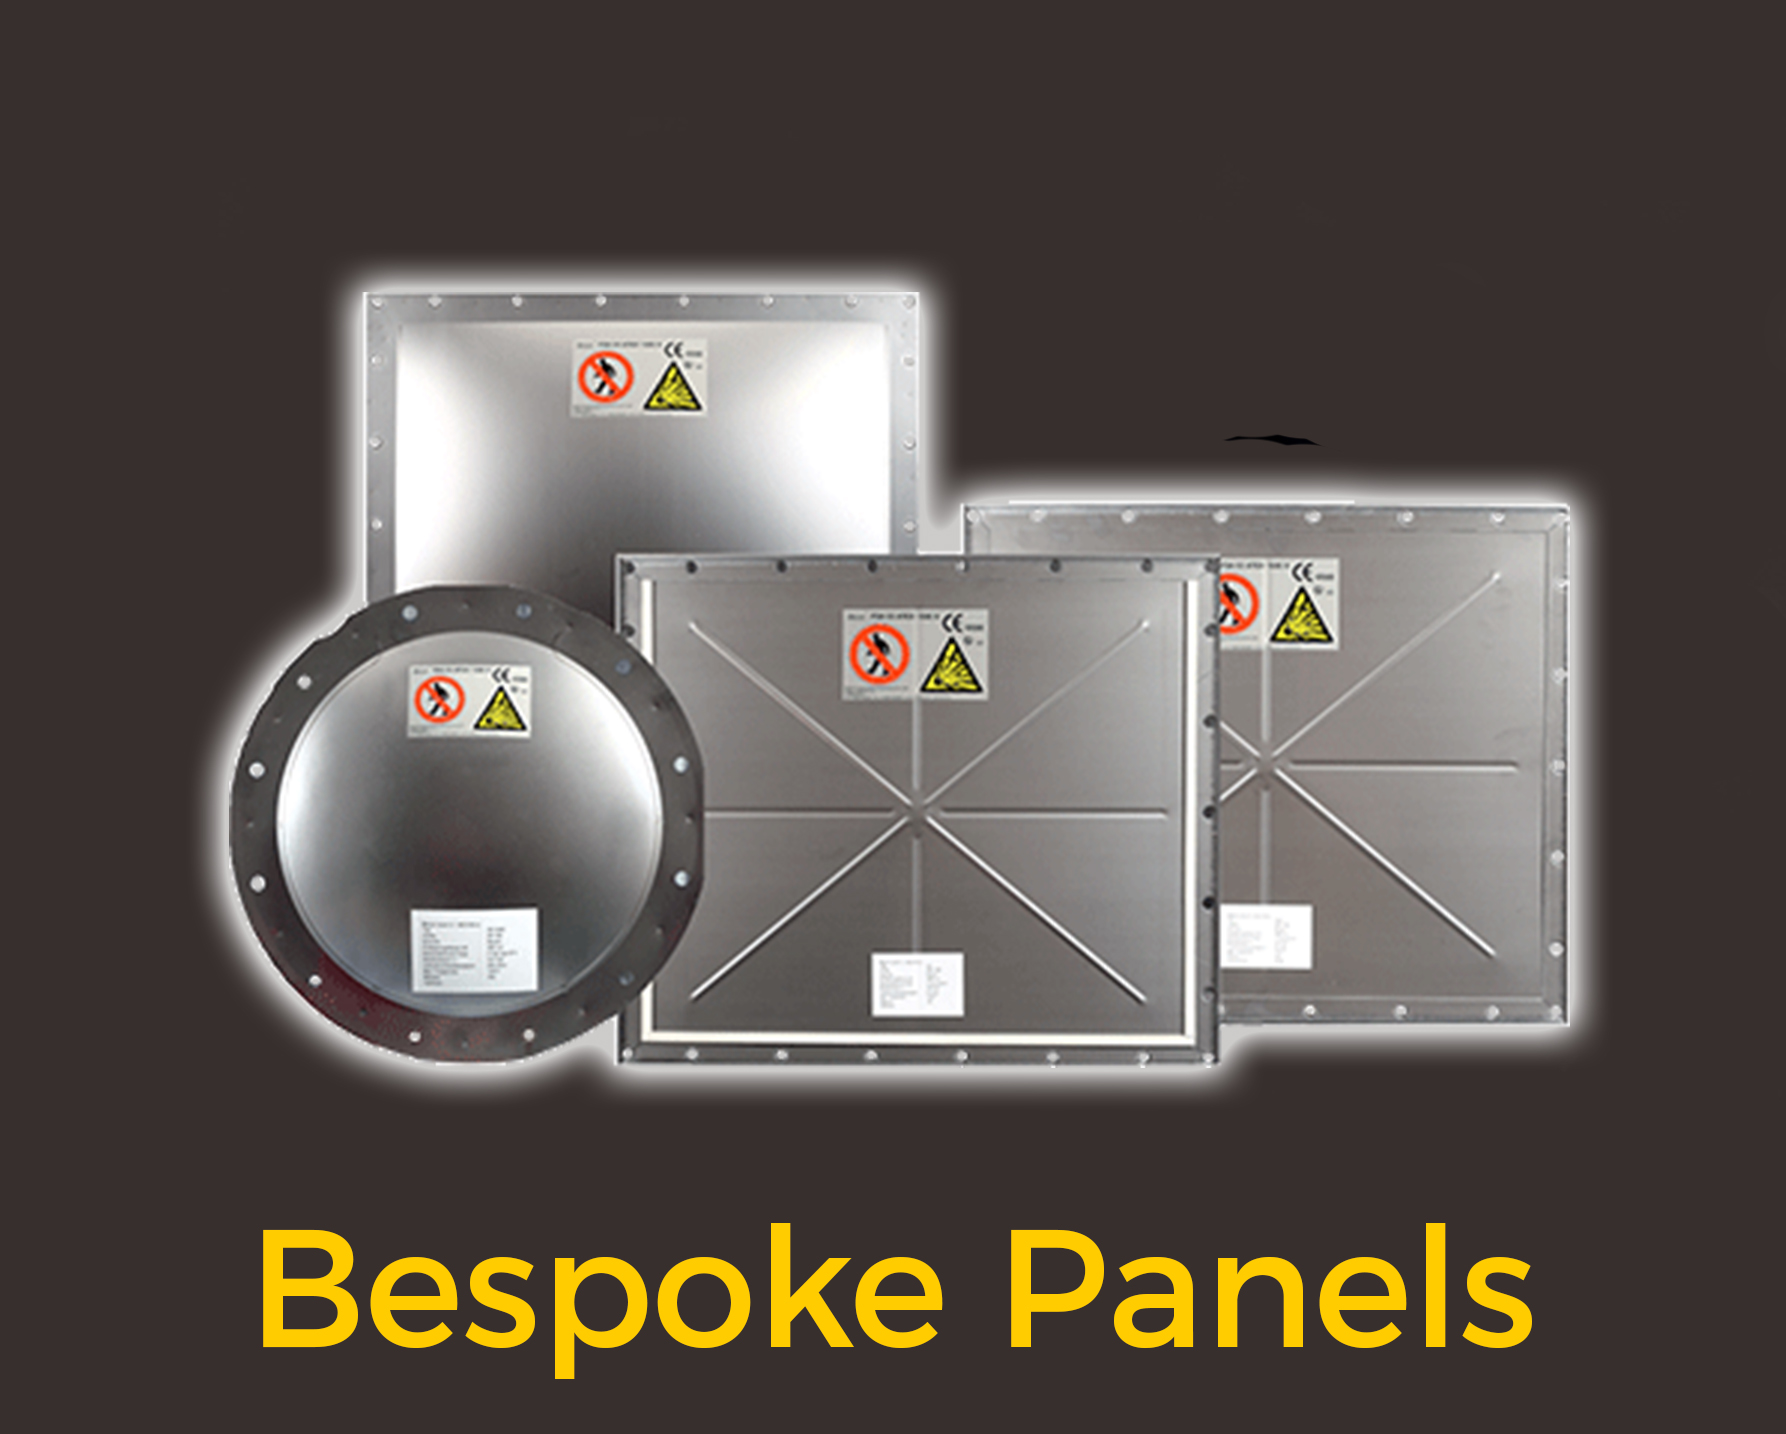 Explosion relief from Bespoke Panels from Euratex uk